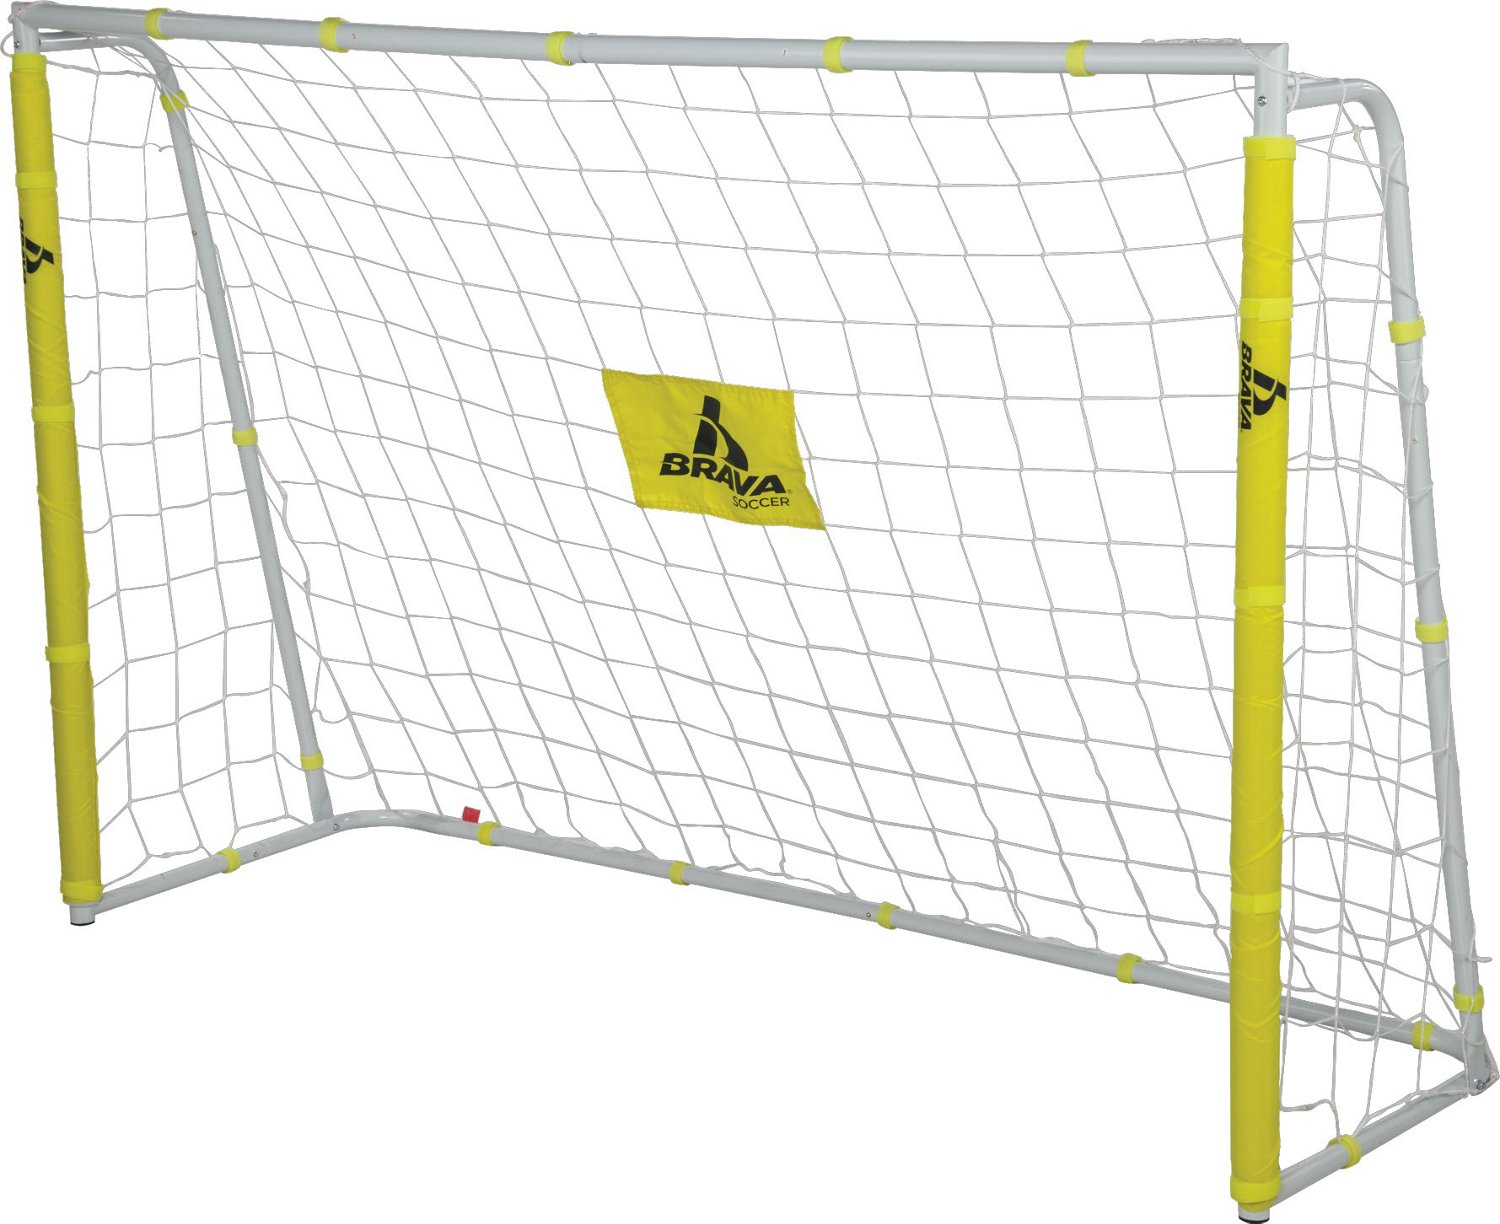 52cd55747 Display product reviews for Brava 4 ft x 6 ft Junior Soccer Goal This ...